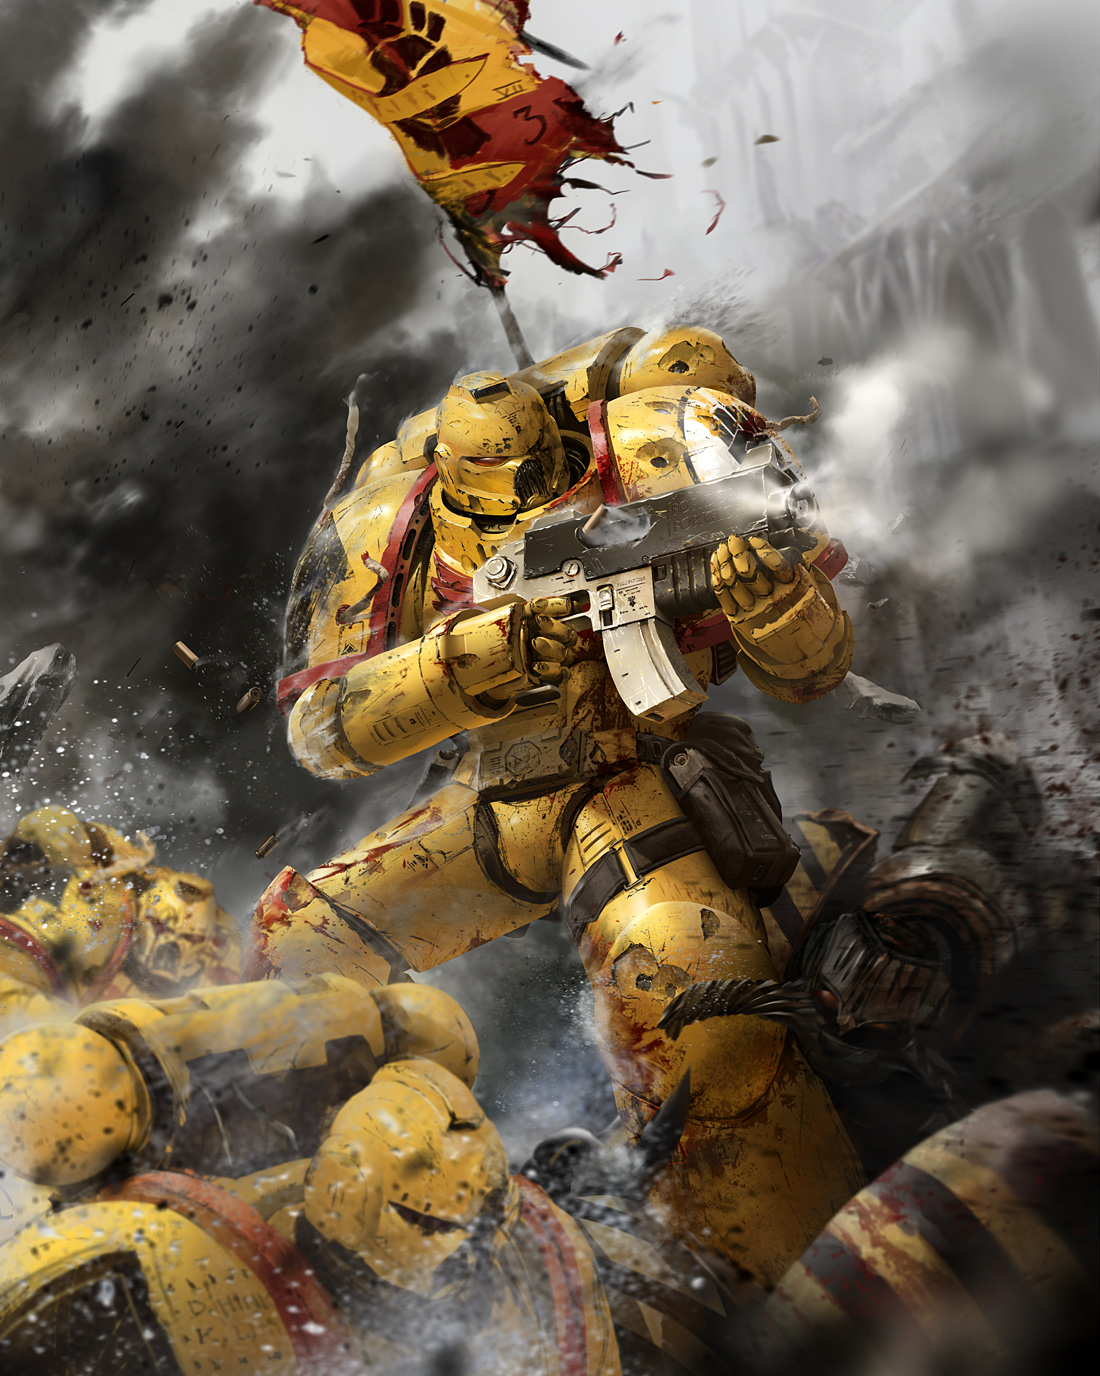 Imperial fists warhammer 40k wiki space marines chaos planets and more - Imperial fists 40k ...